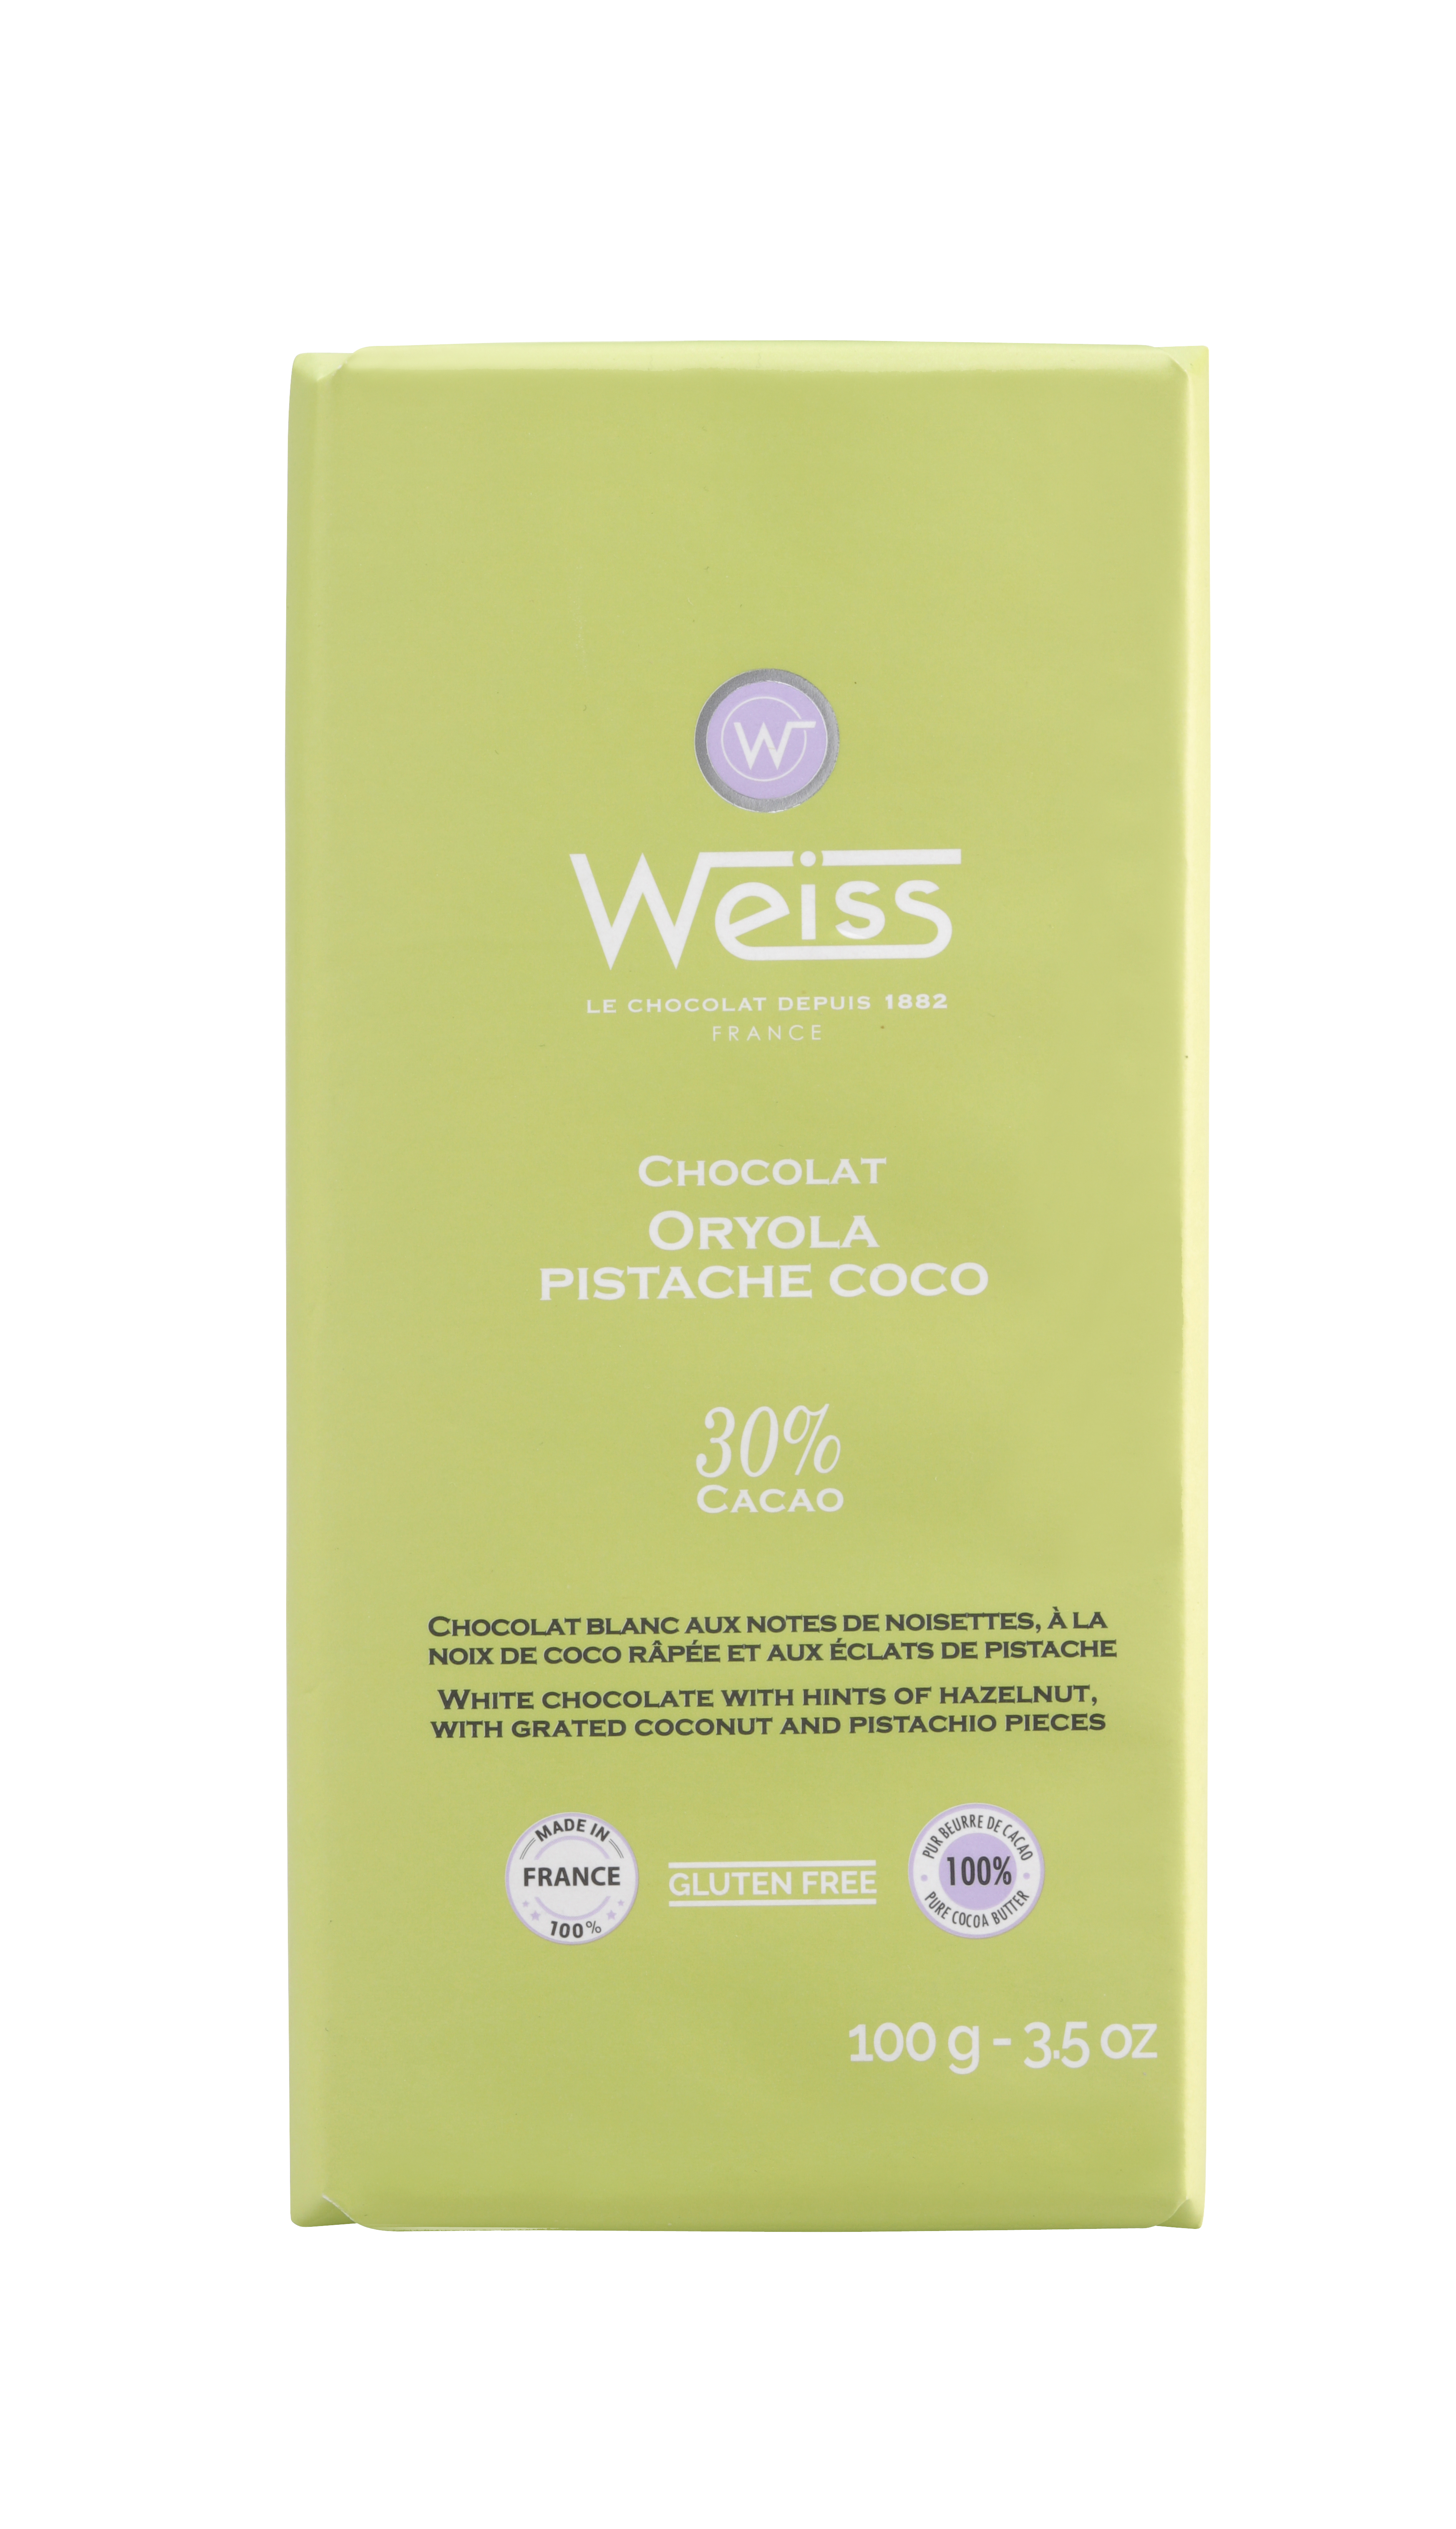 Tablette Oryola chocolat blanc pistache coco 30% de cacao, Weiss (100 g)